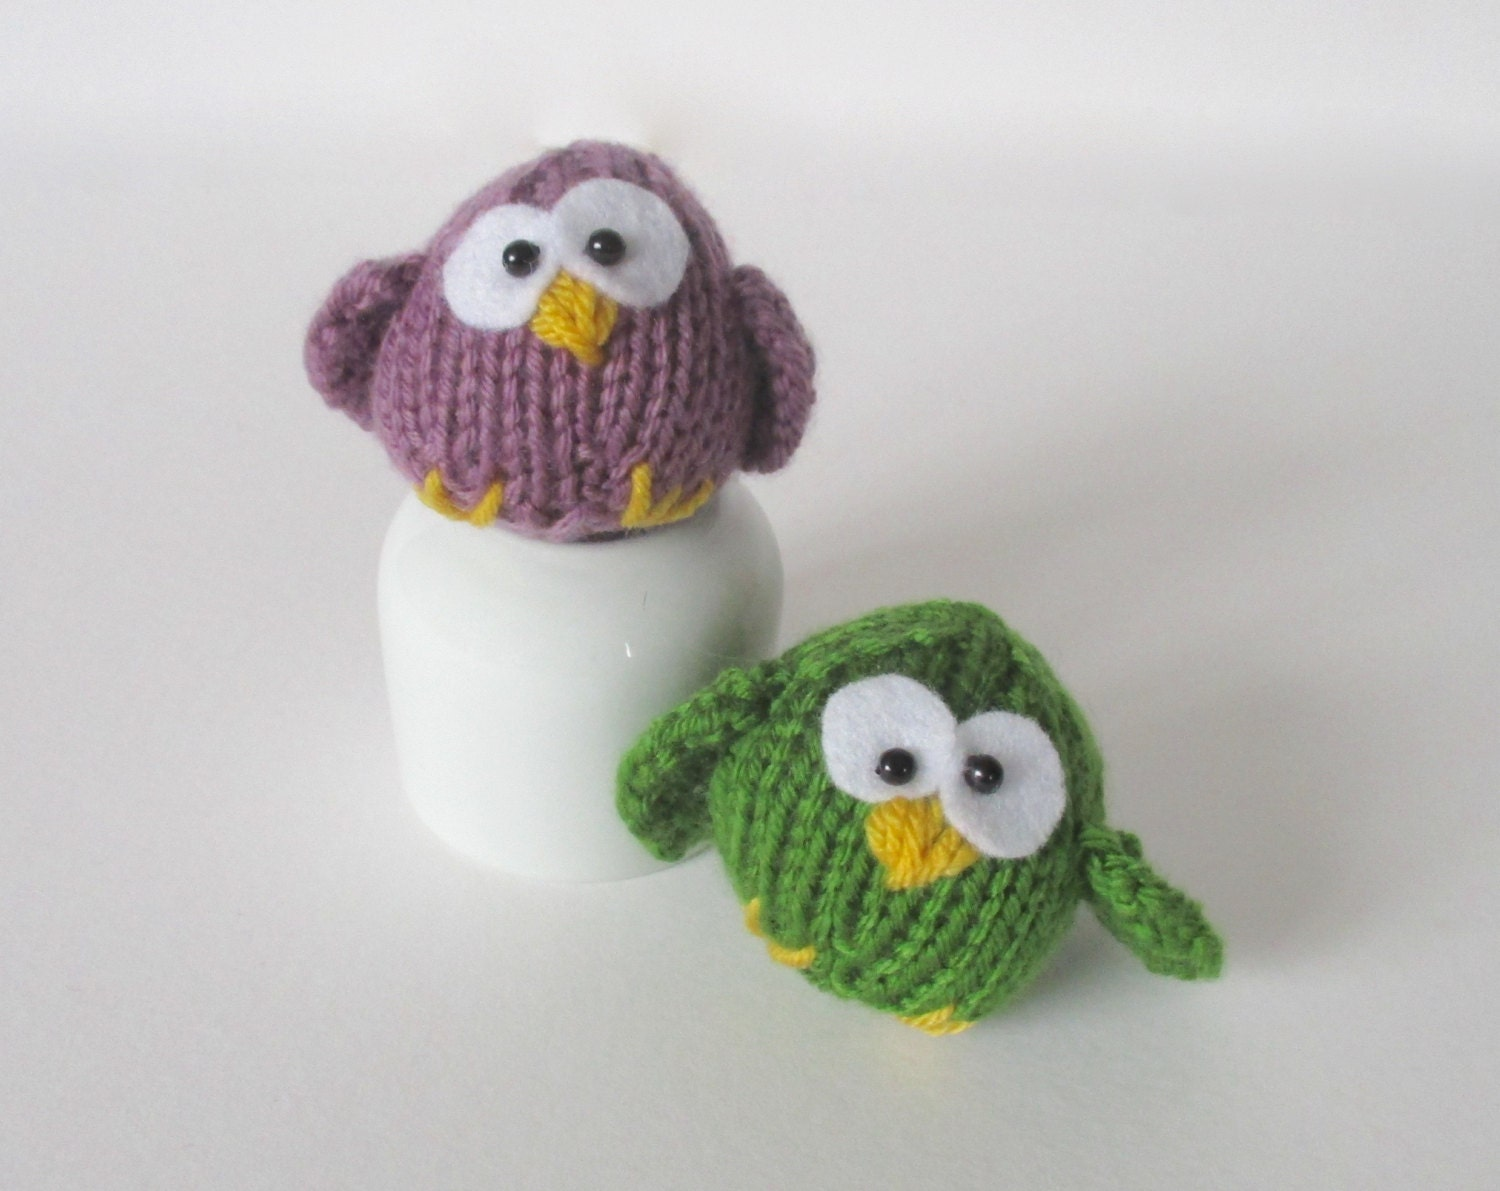 Disney Knitting Patterns Free : Little Owl toy knitting pattern